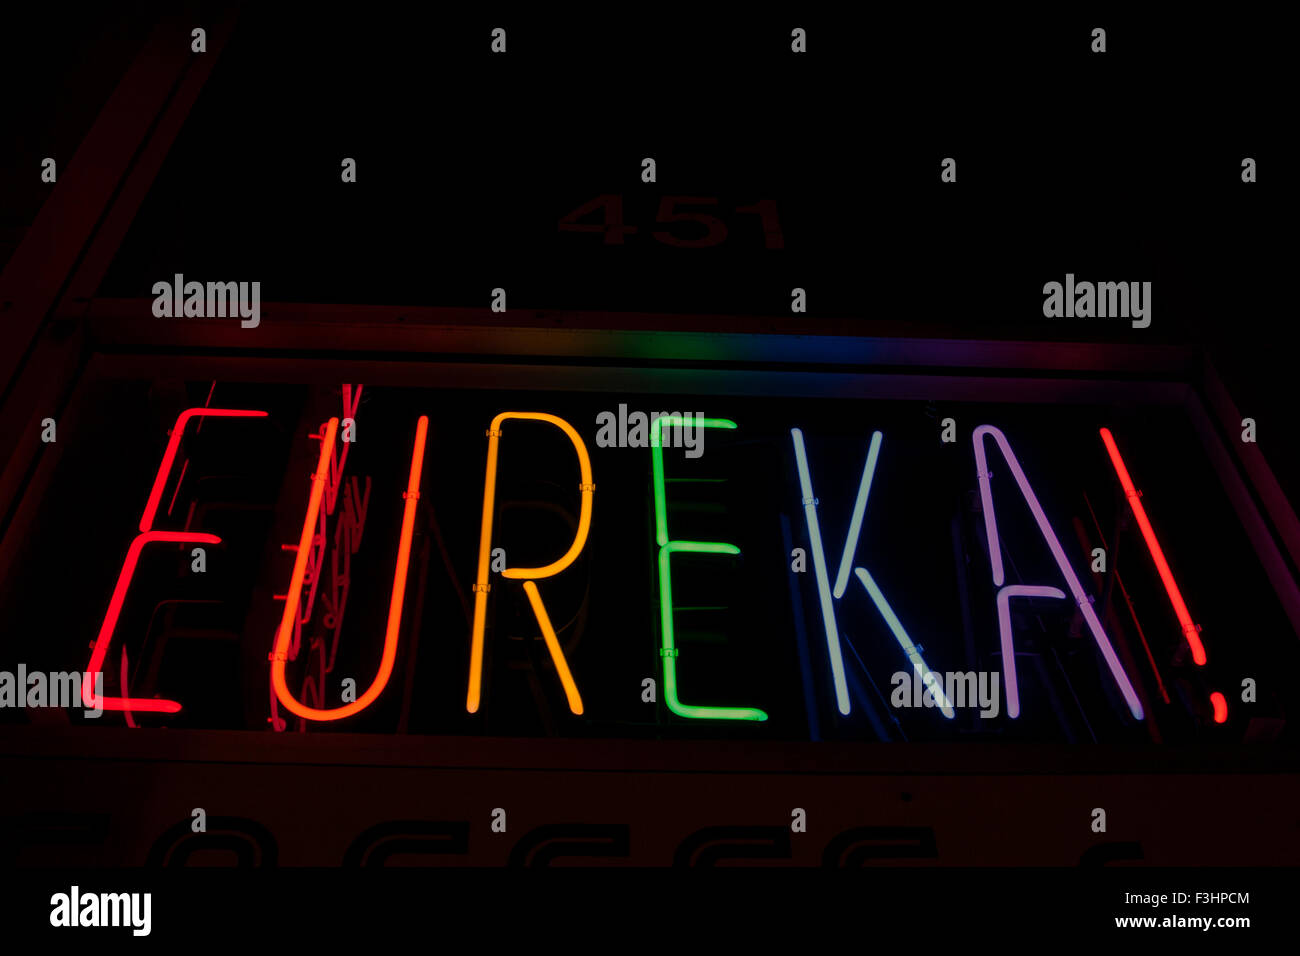 'Eureka!' in neon lights, found in a window in The Castro in San Francisco, California. - Stock Image